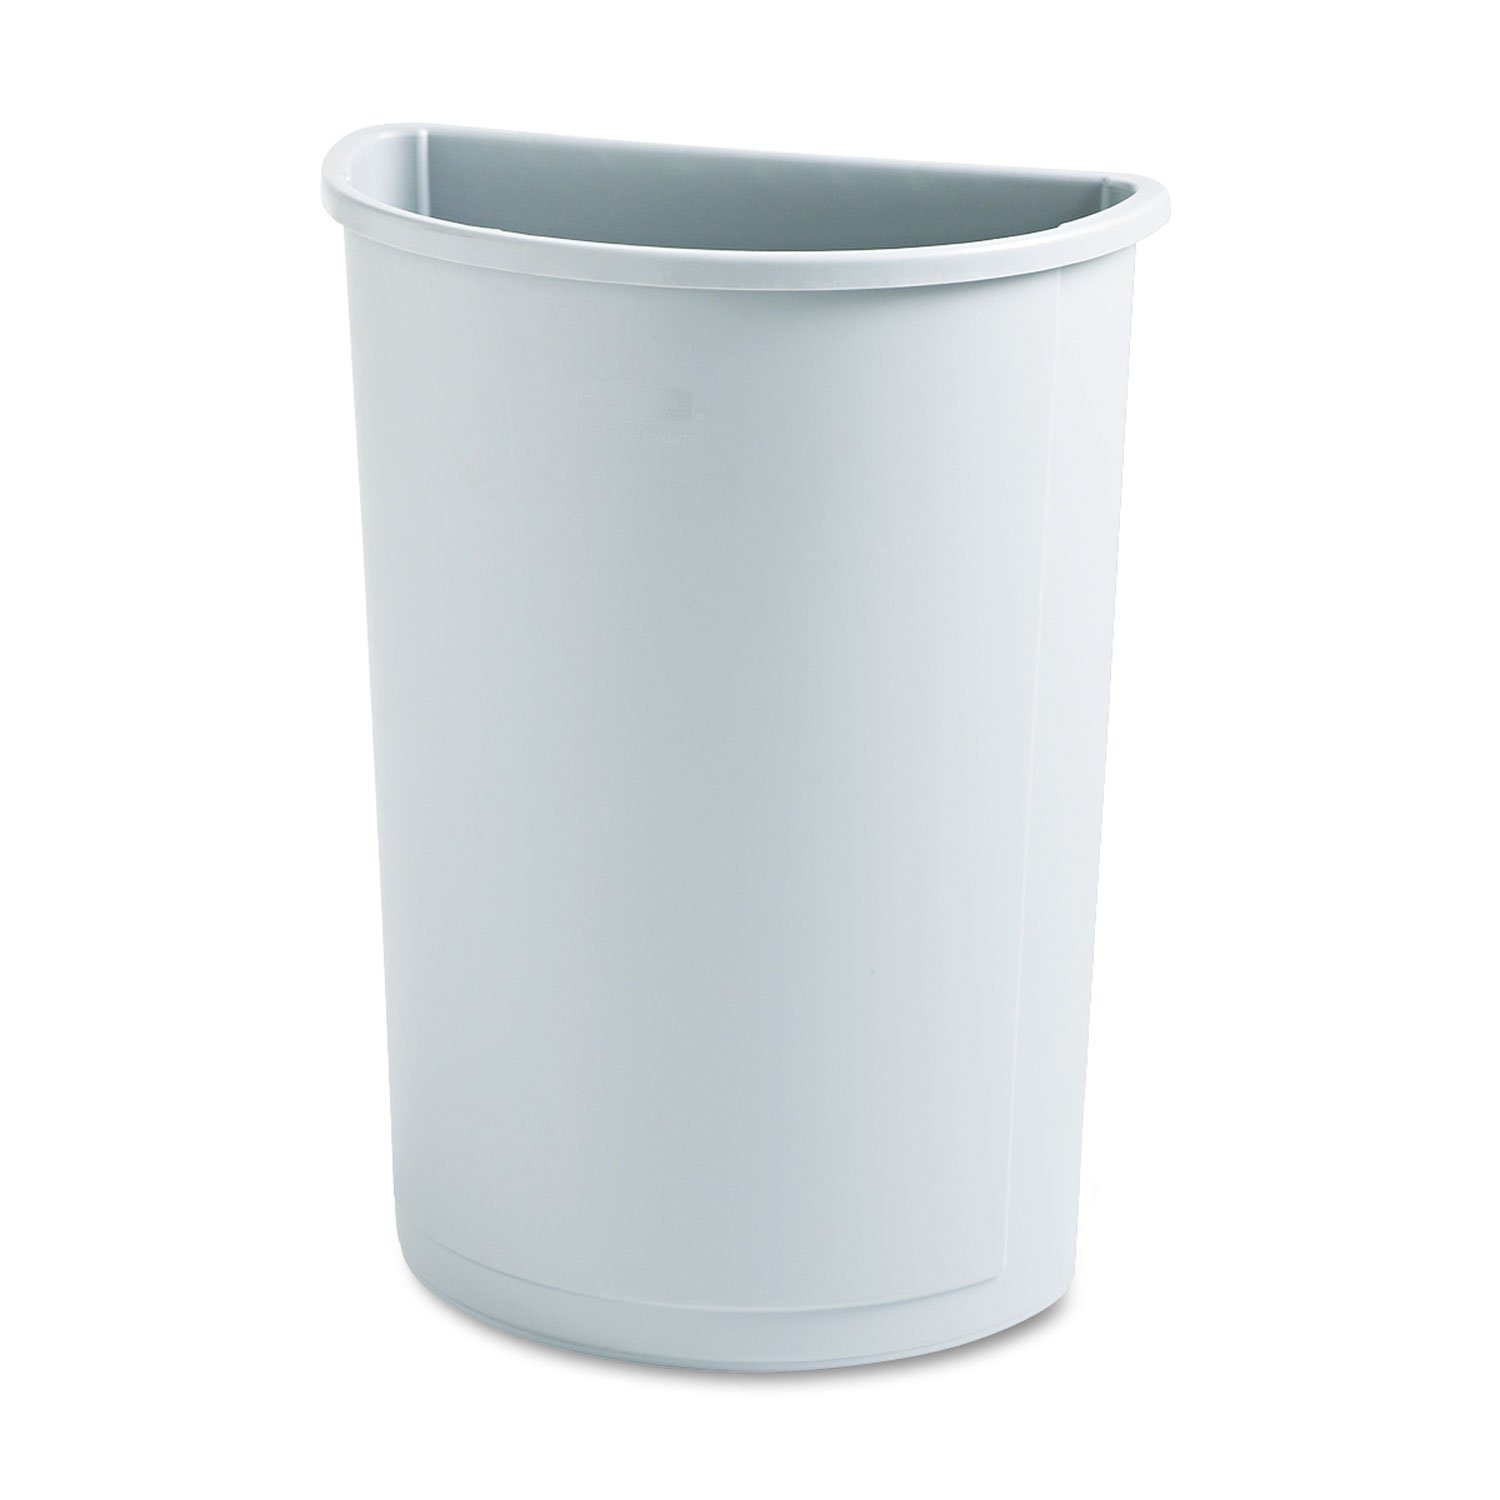 Rubbermaid Commercial 352000GY Untouchable Waste Container Half-Round Plastic 21gal Gray